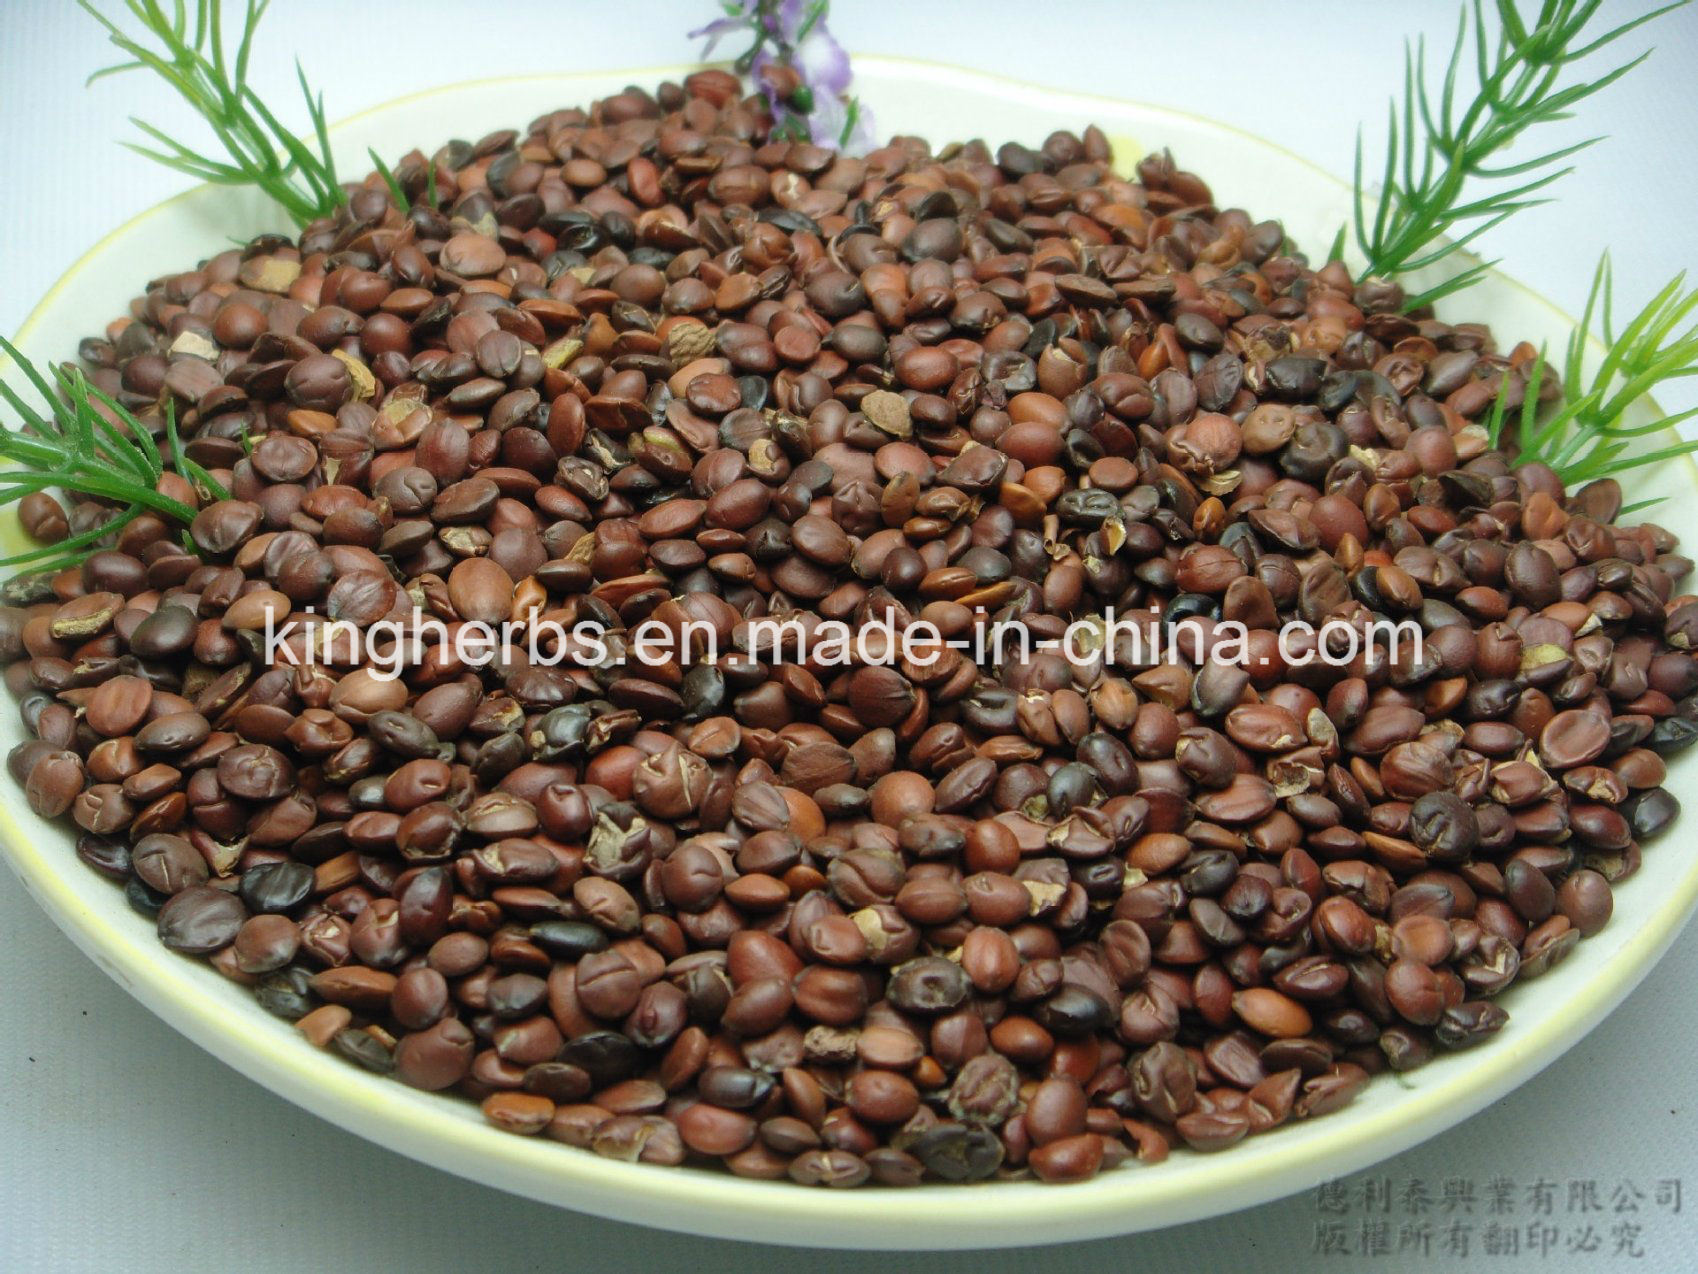 China Spine Date Seed Extract